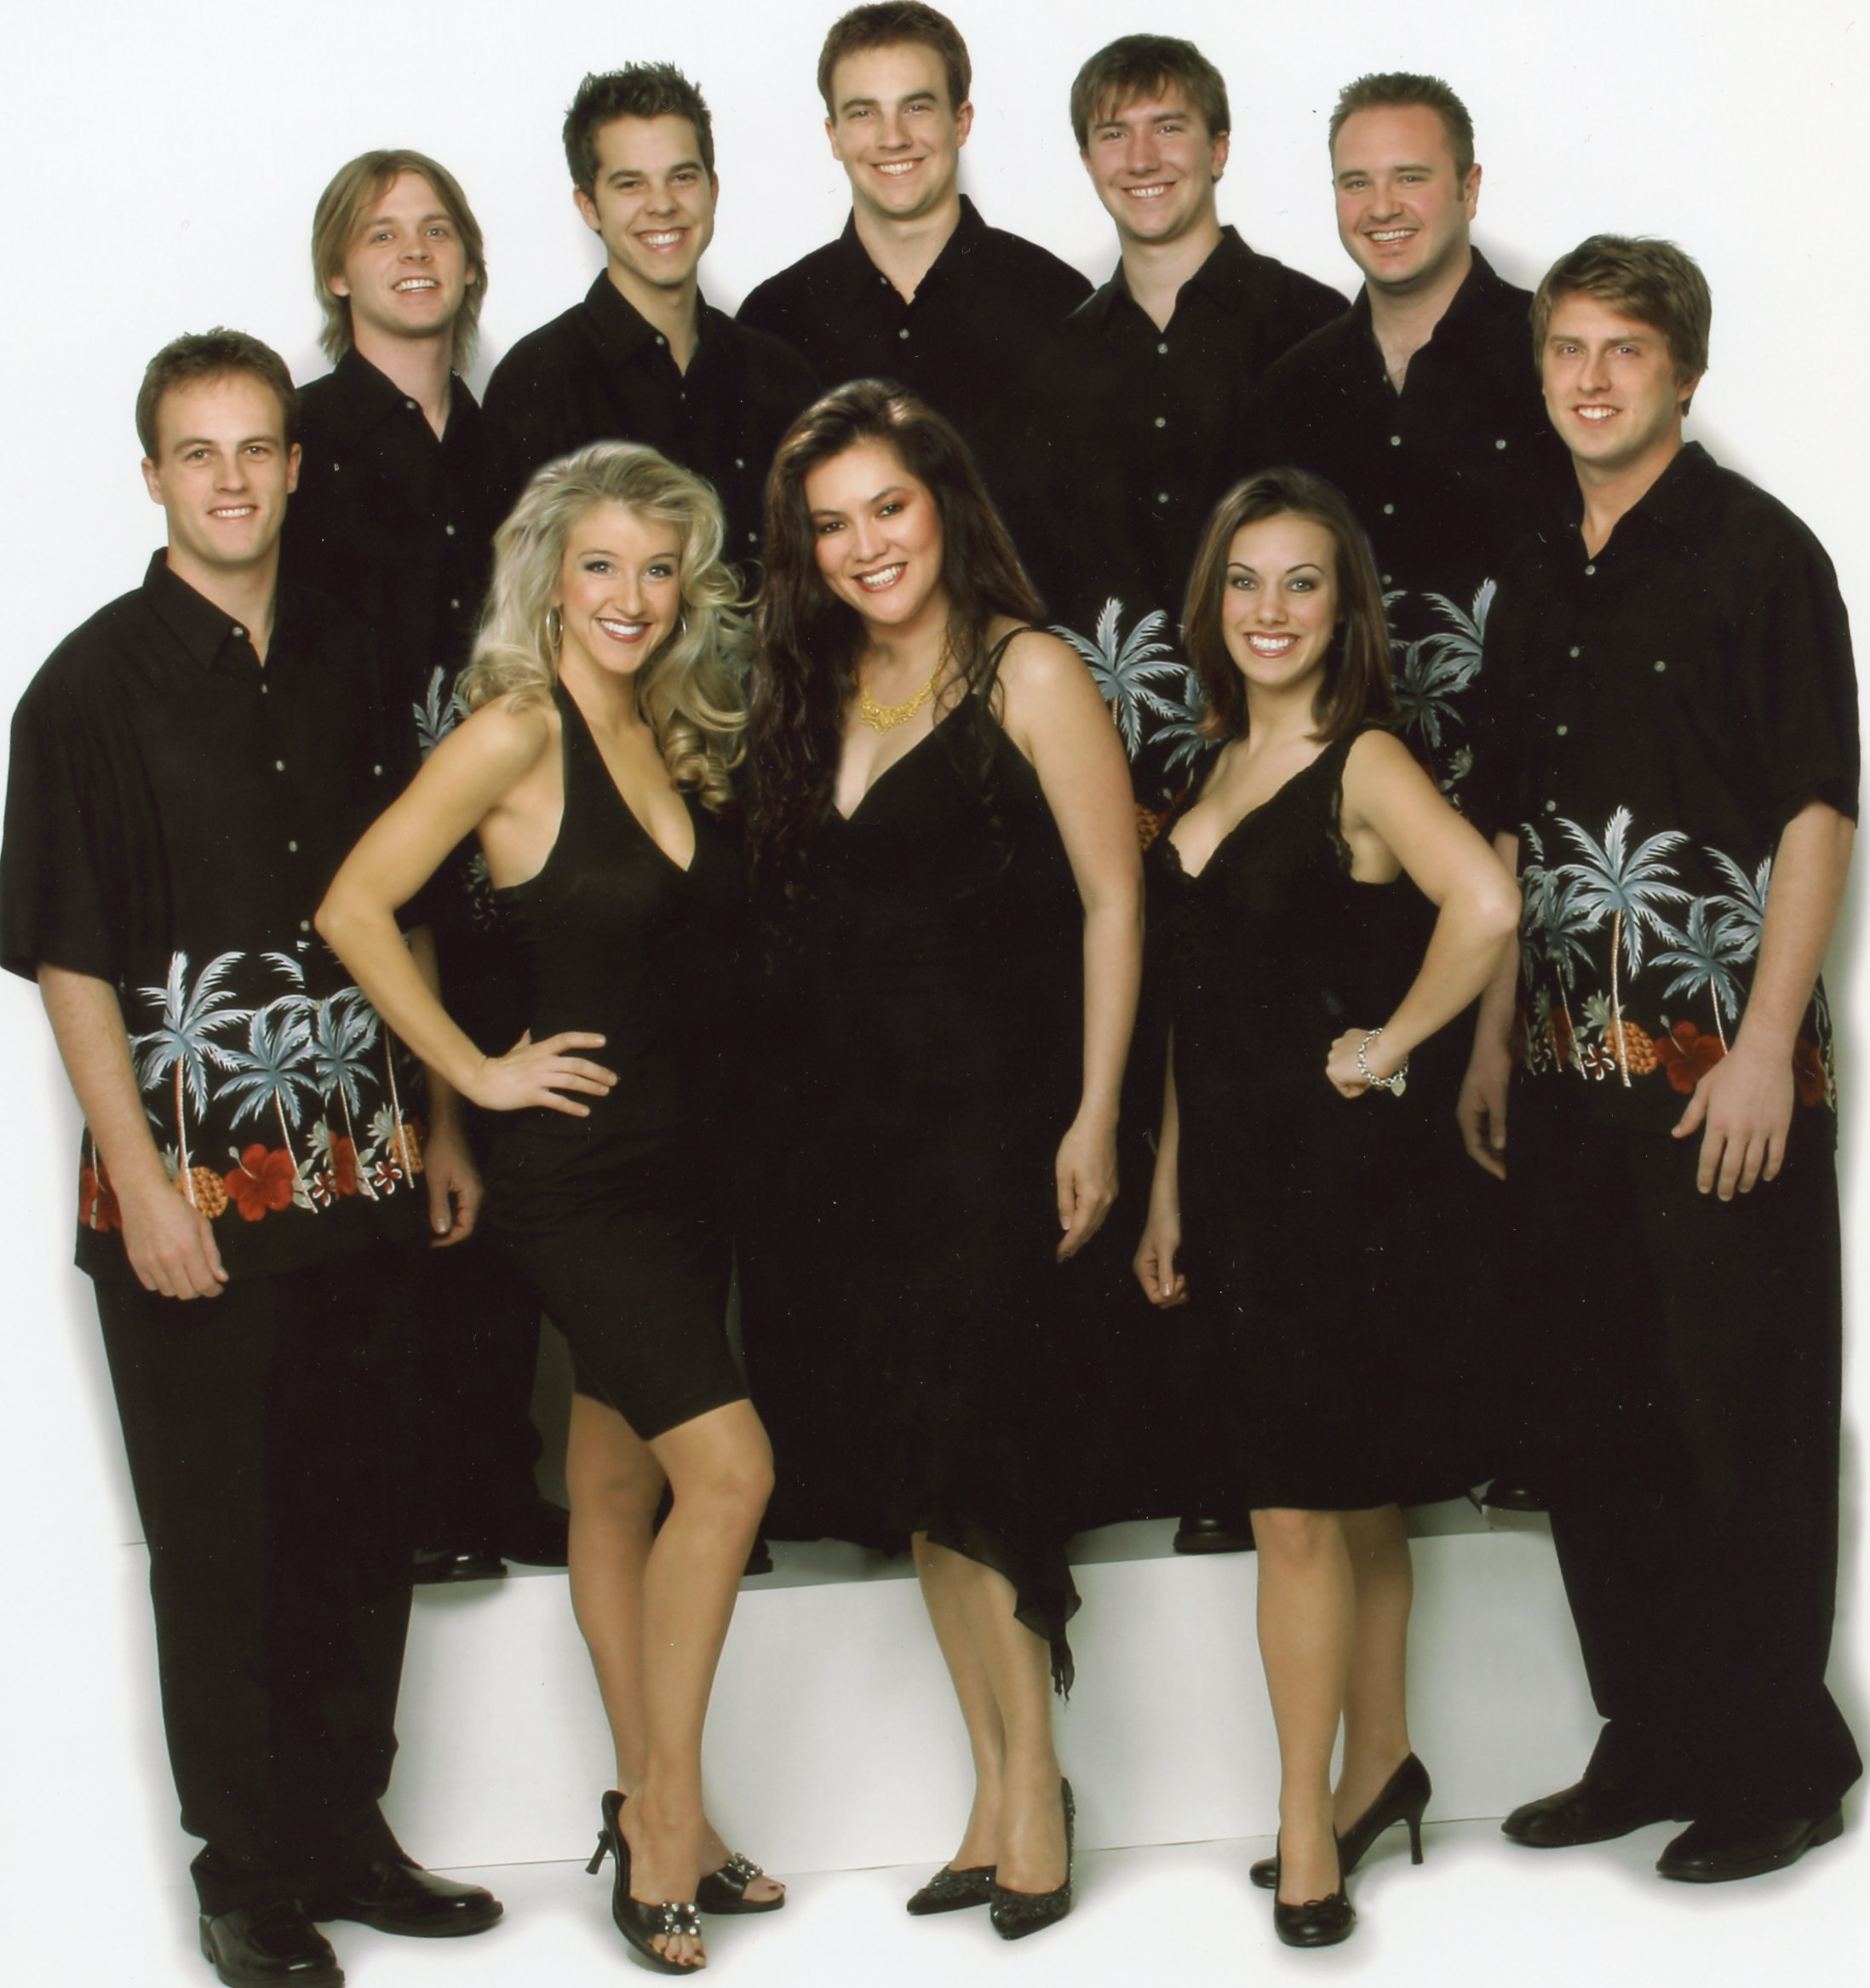 A Great Cover Band Will Make Your Wedding Reception Corporate Party Or Special Event Come Alive Bands Sometimes Called Dance Variety